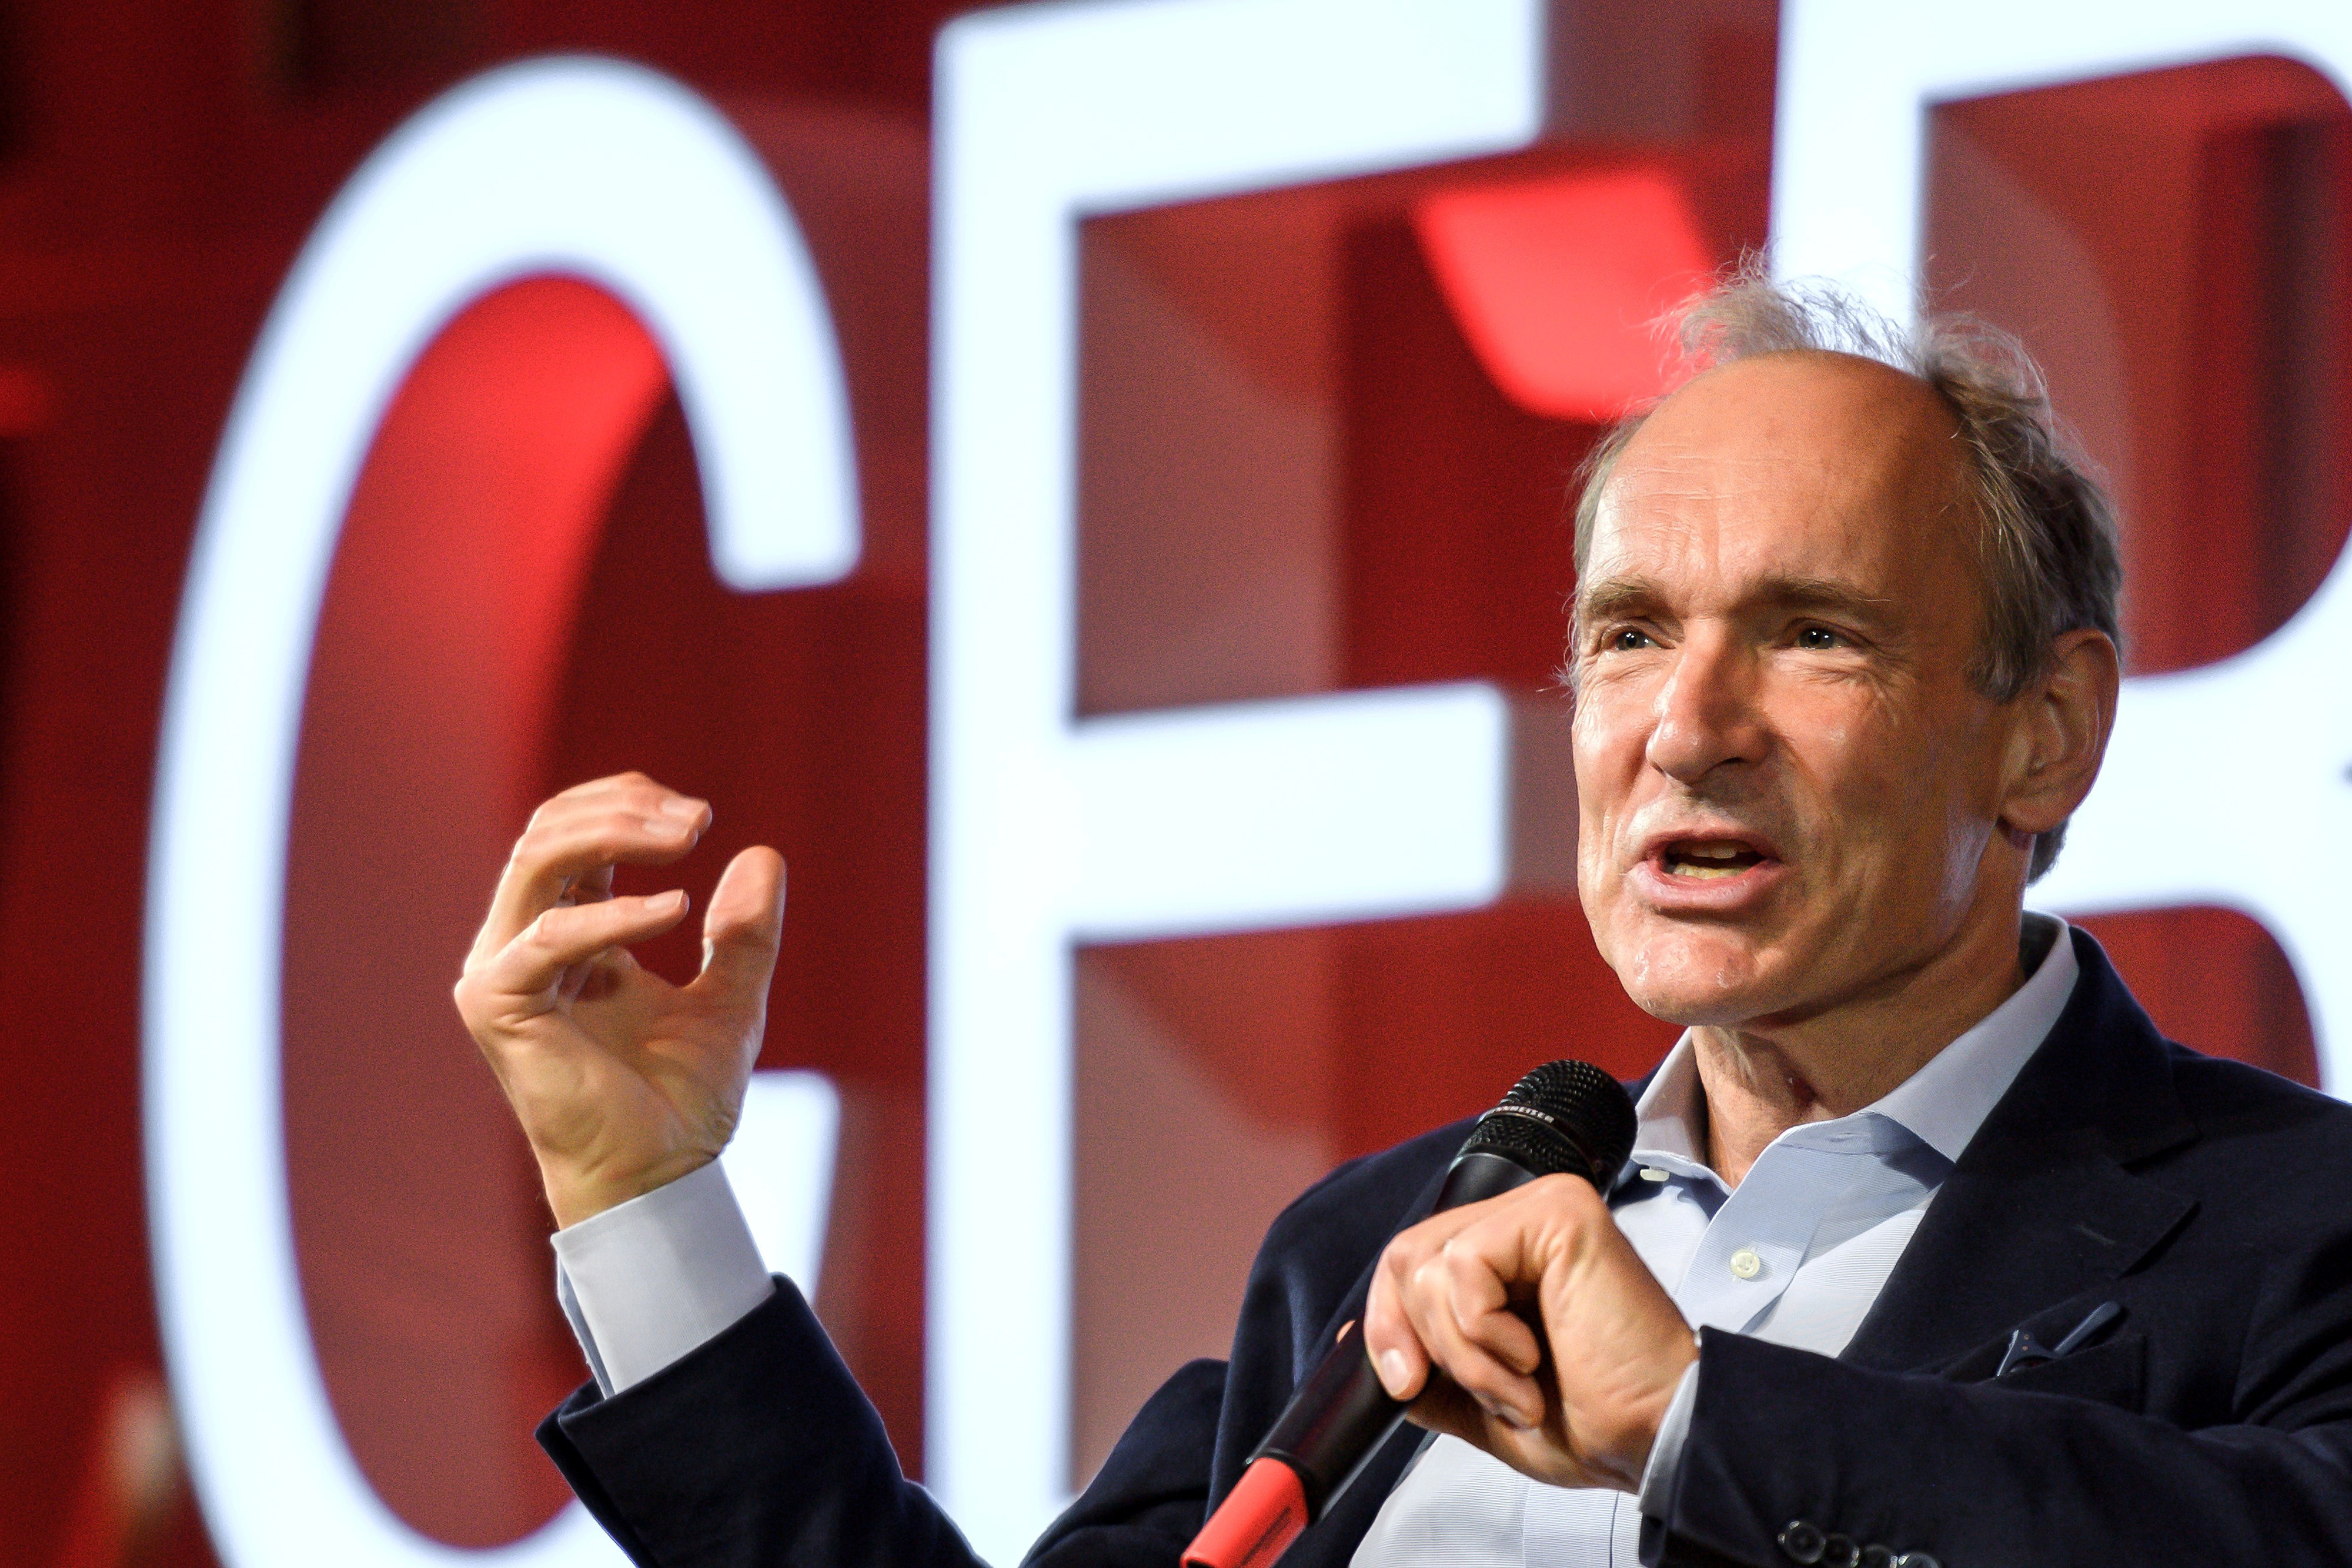 World Wide Web inventor Tim Berners-Lee delivers a speech during an event marking 30 years of World Wide Web, on March 12, 2019 at the CERN in Meyrin near Geneva, Switzerland. Fabrice Coffrini/Pool via REUTERS - RC1EB2A7A4F0